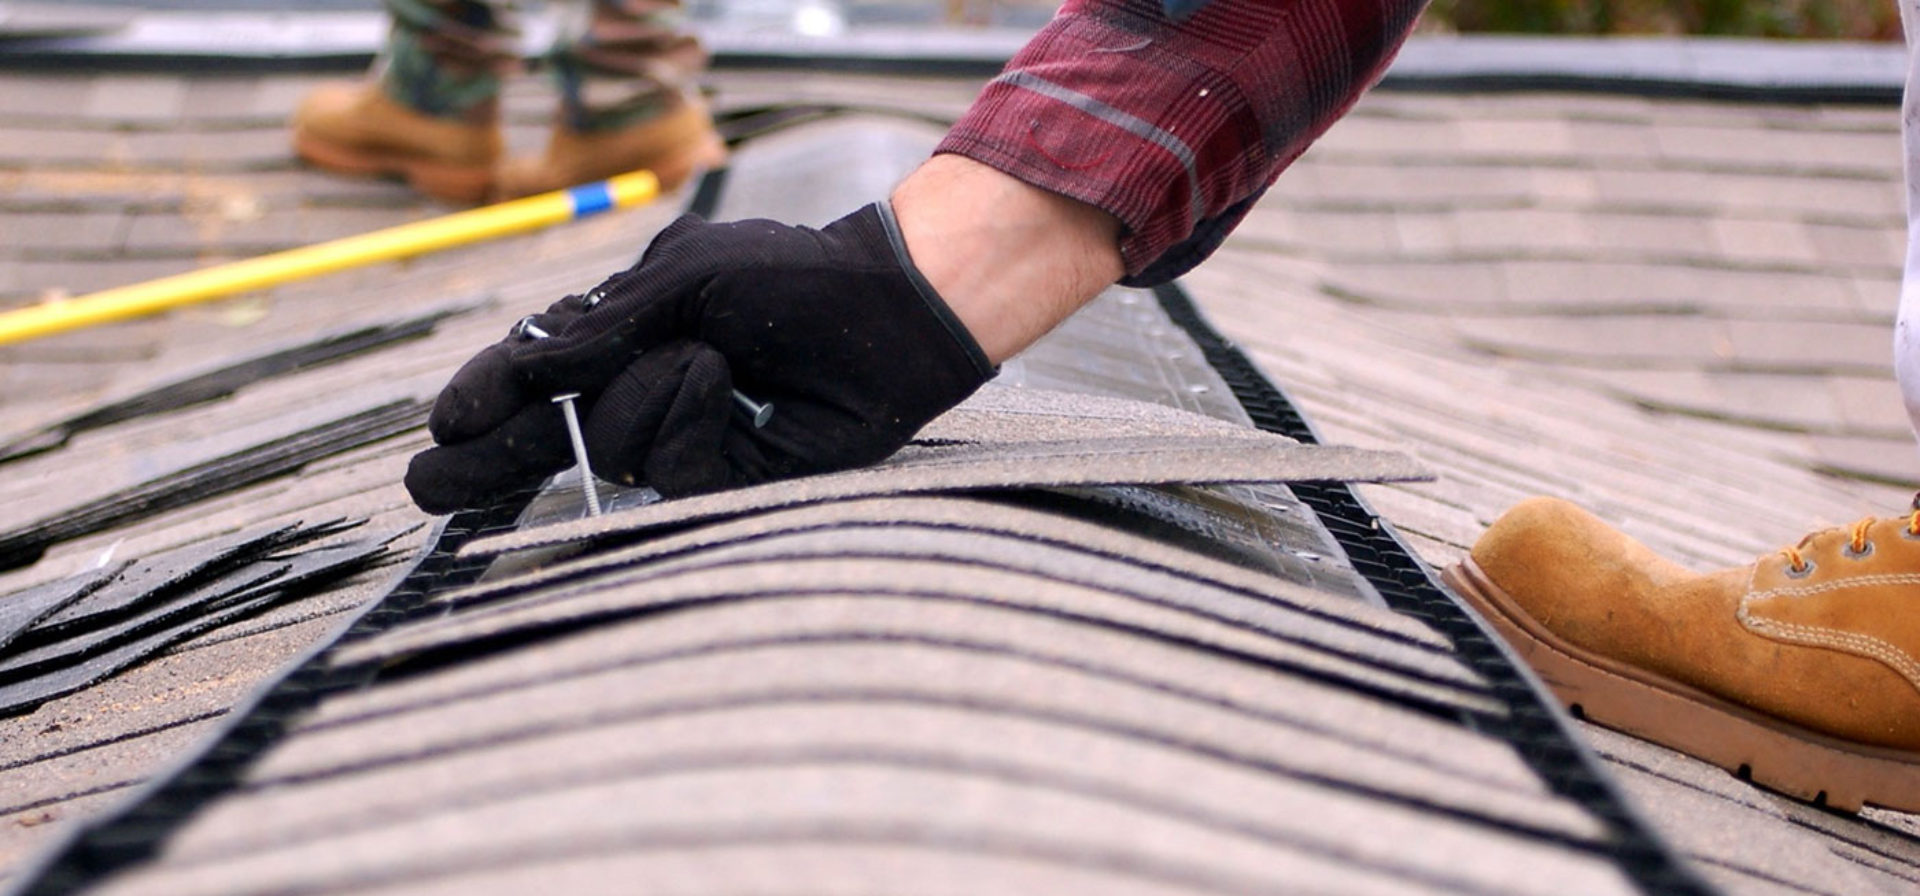 Cleaning The Roof With Black Stains And Streaks